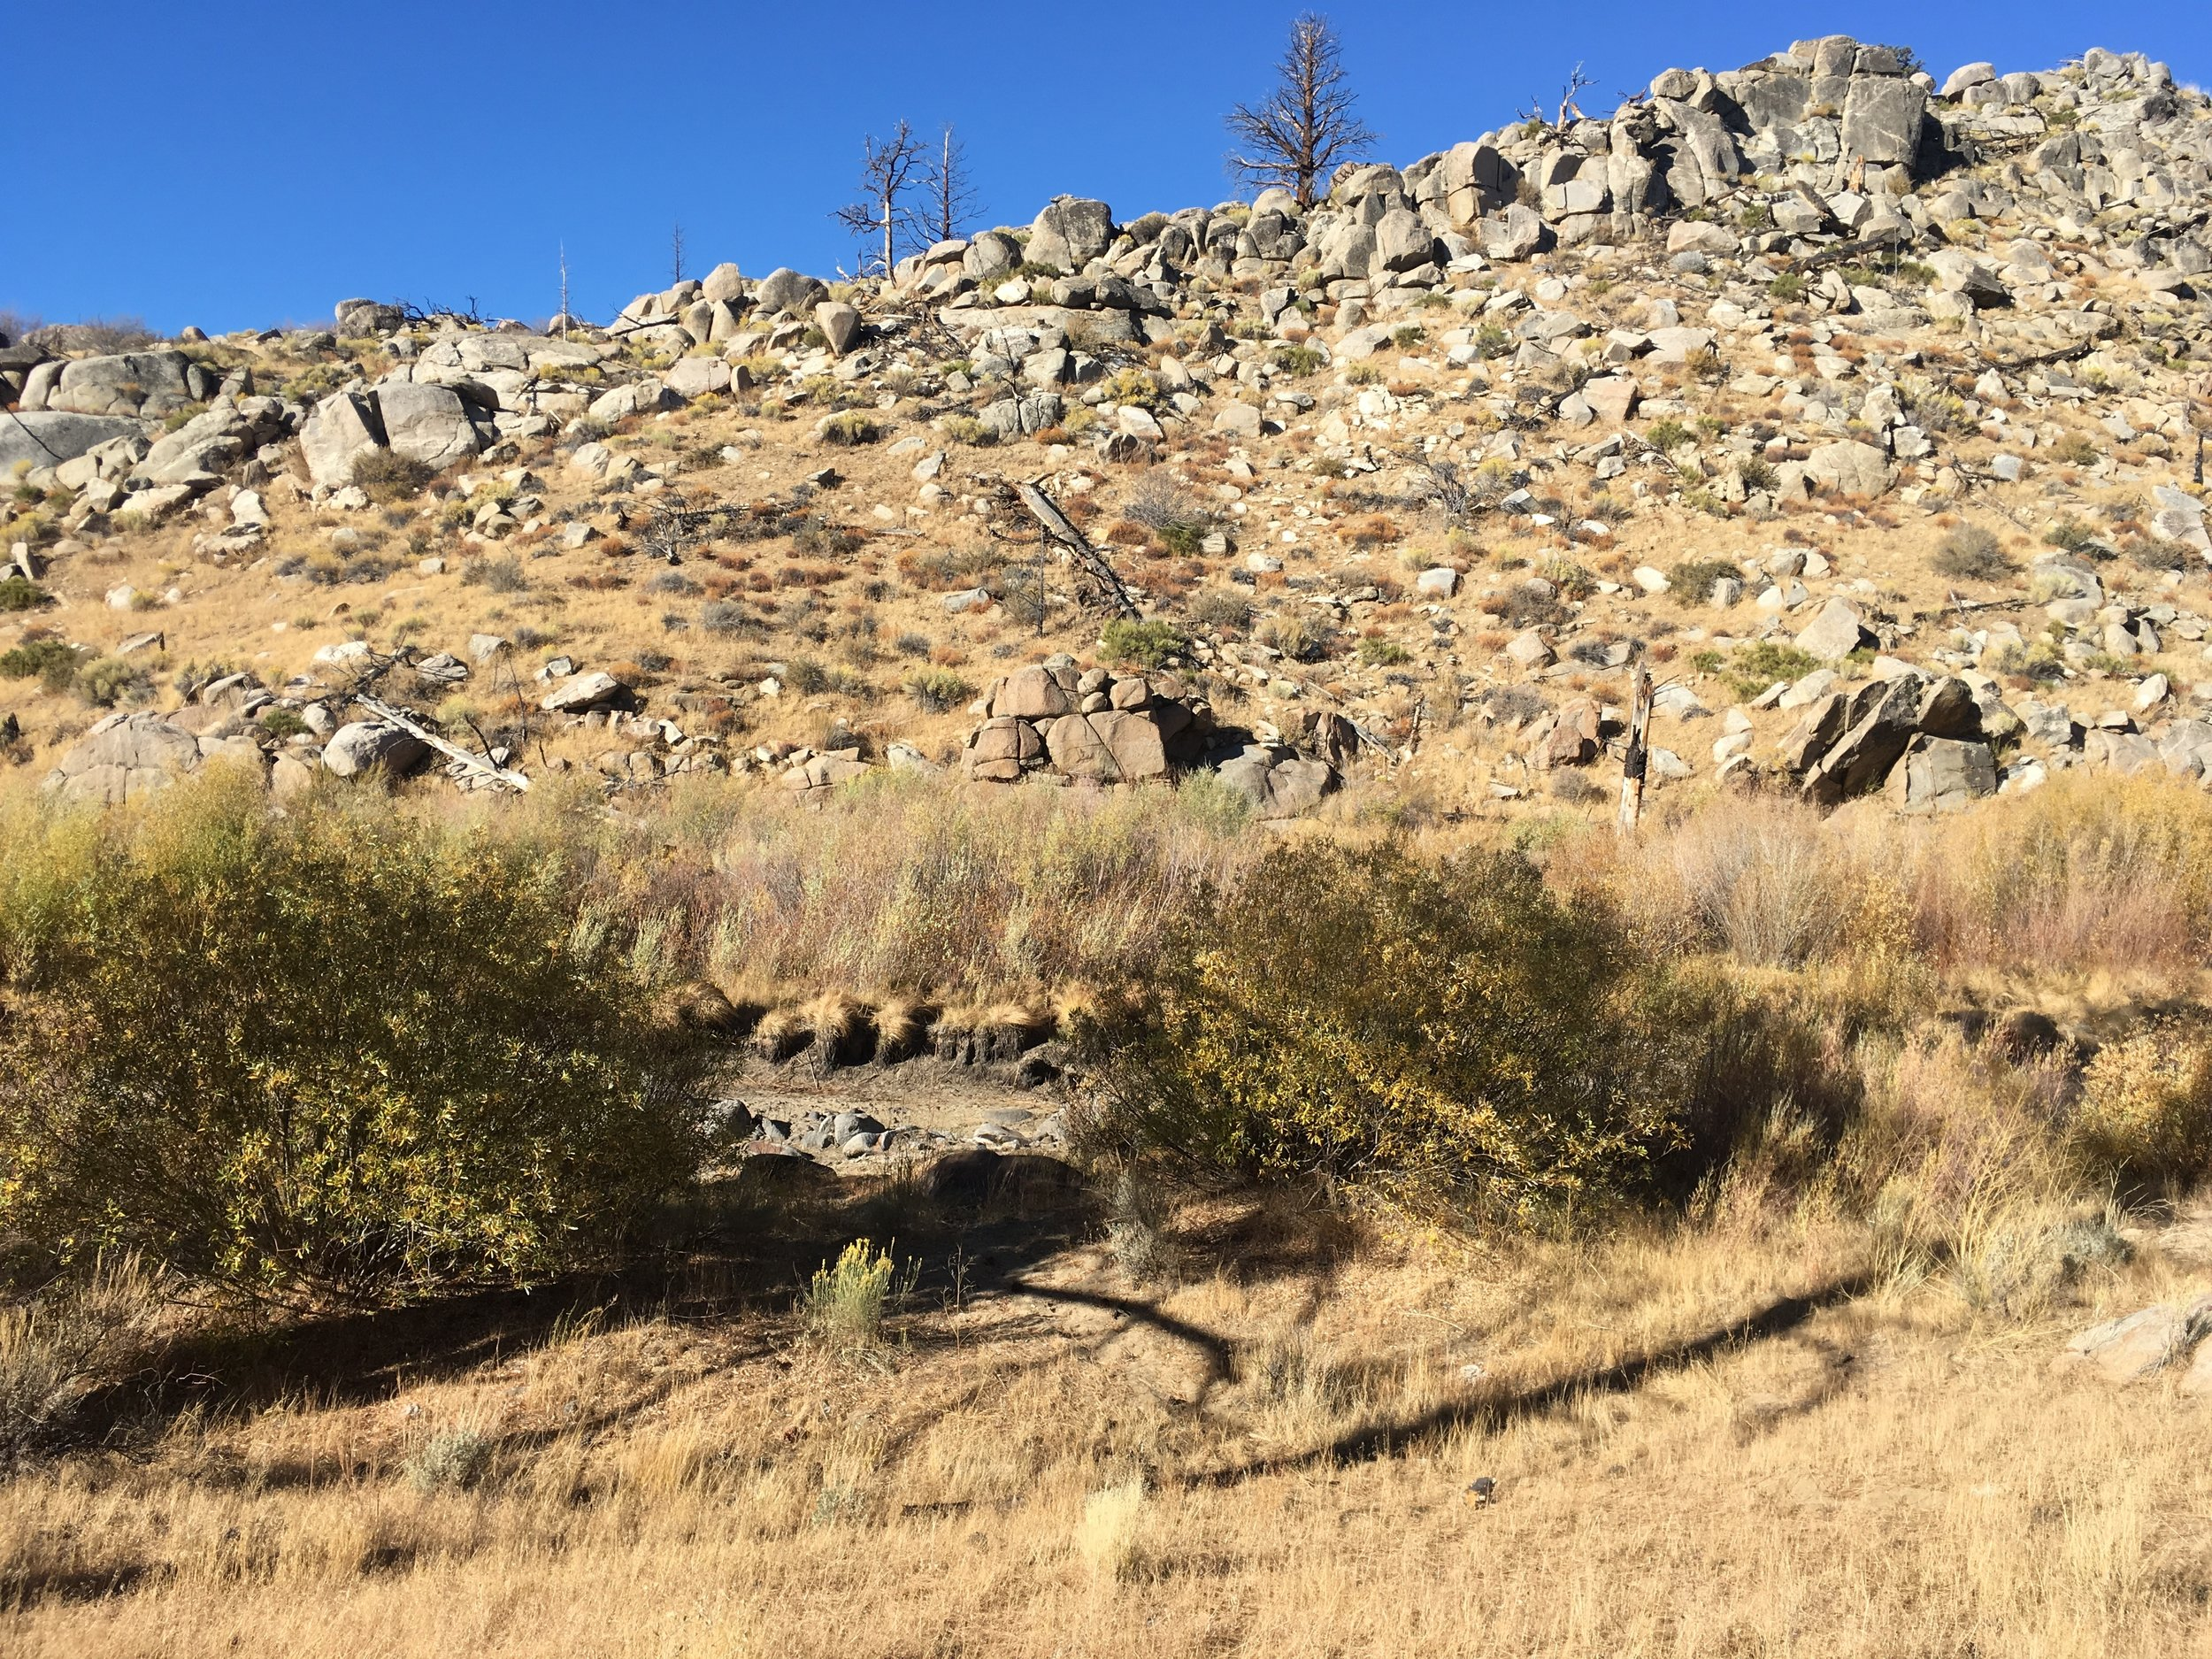 The south fork of the Kern River dry, 5 miles ago it was flowing.